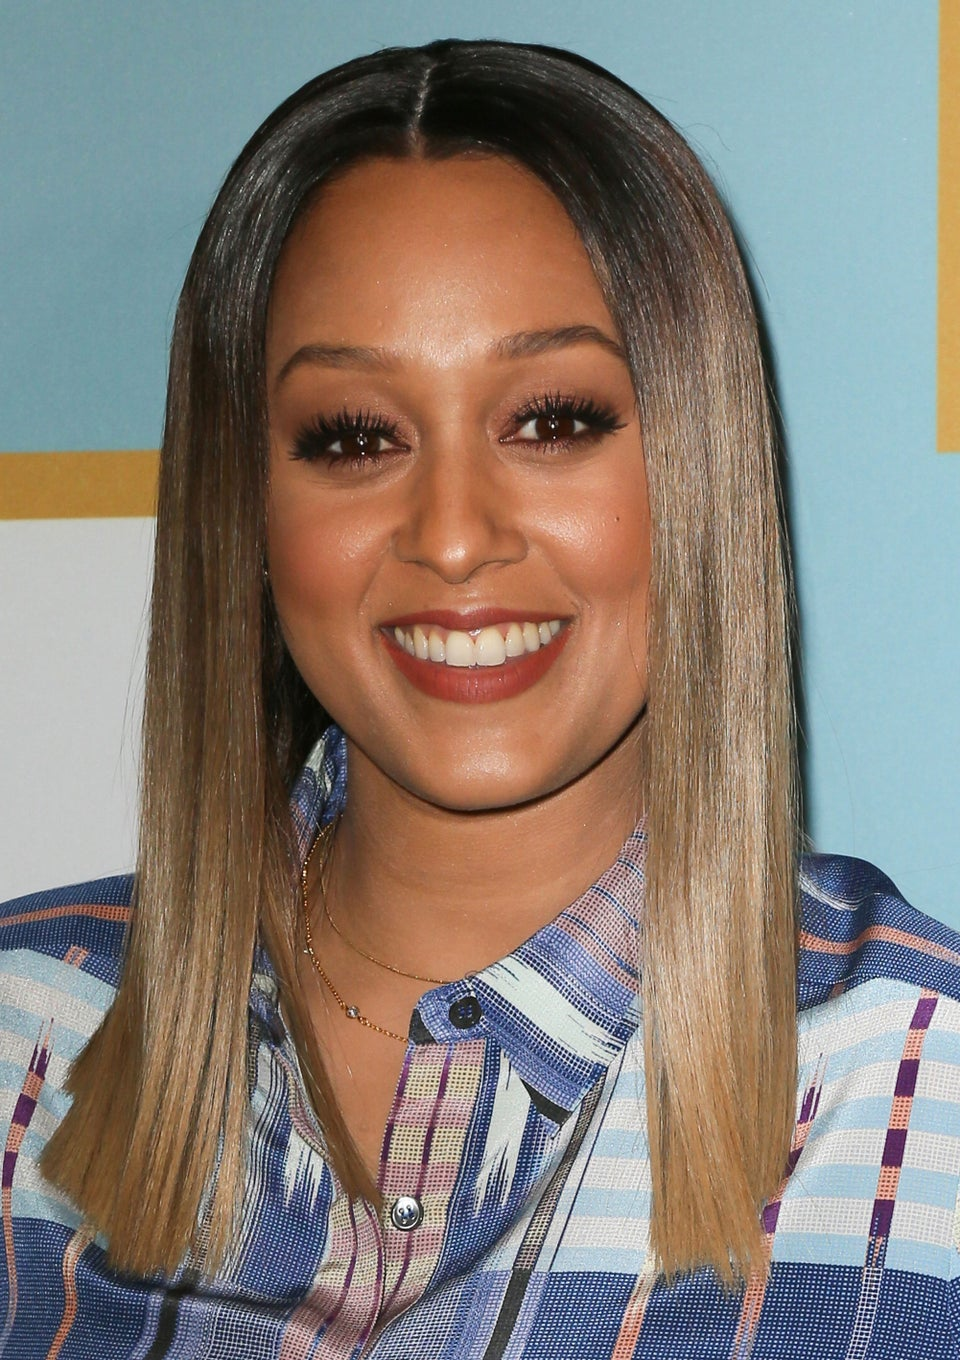 Tia Mowry Dishes Out Advice with the Help of Some Cool Friends on 'Mostly Mom' Podcast